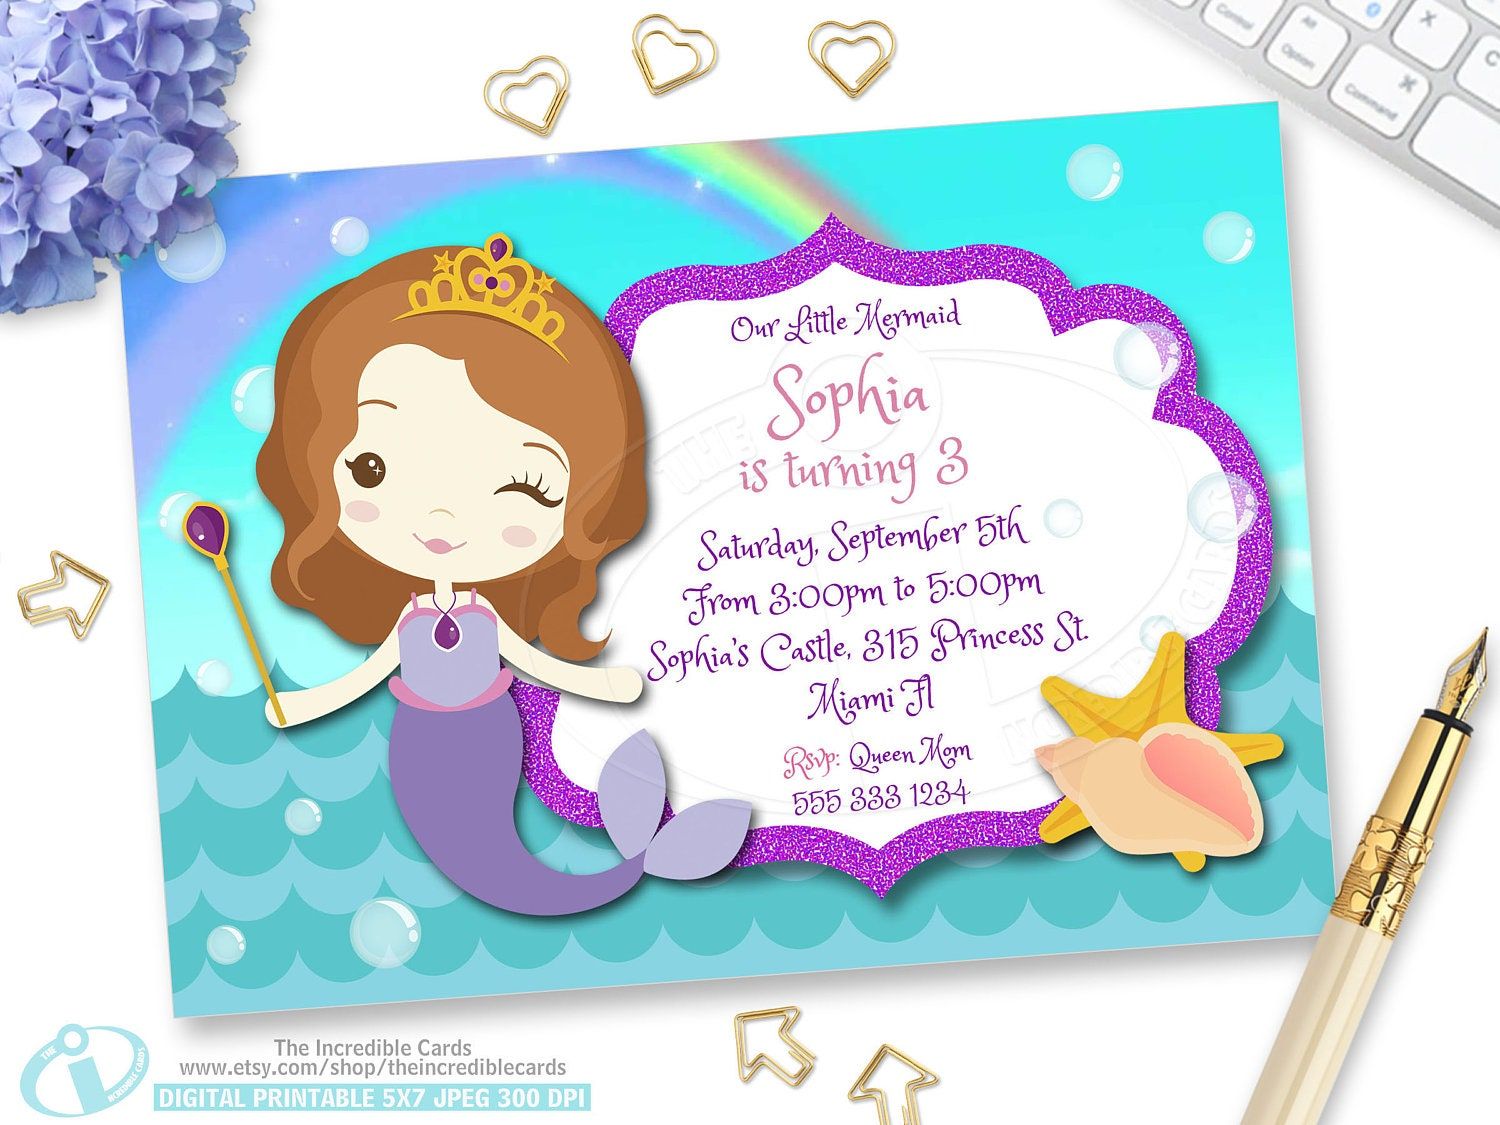 OFF SALE Princess Sofia Mermaid, Princess Sofia Birthday Invitation ...